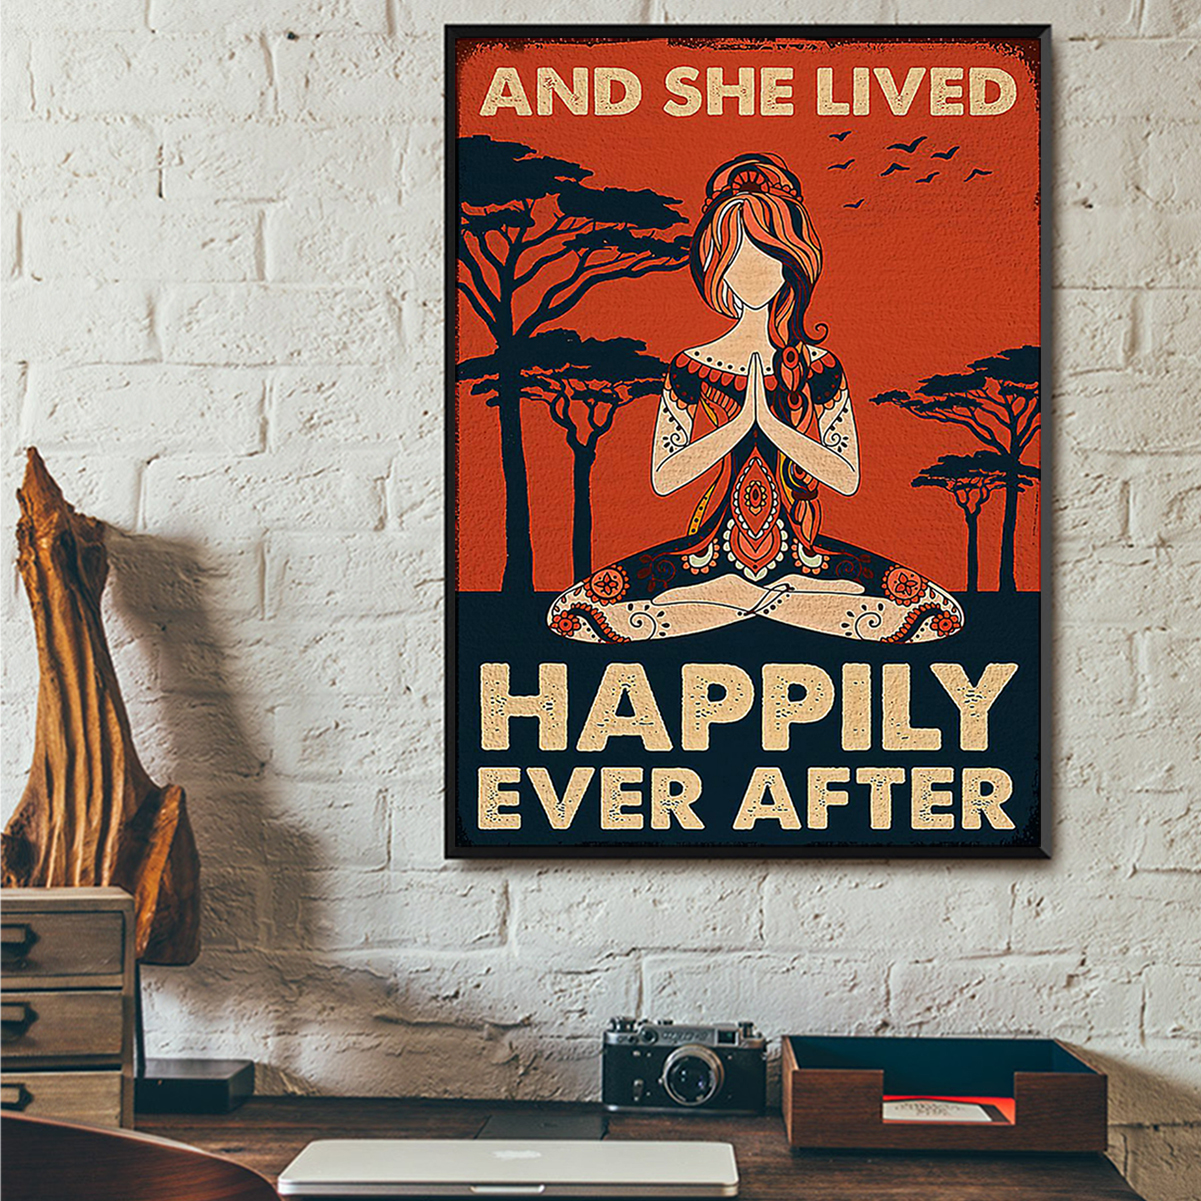 Yoga girl and she lived happily ever after poster A3